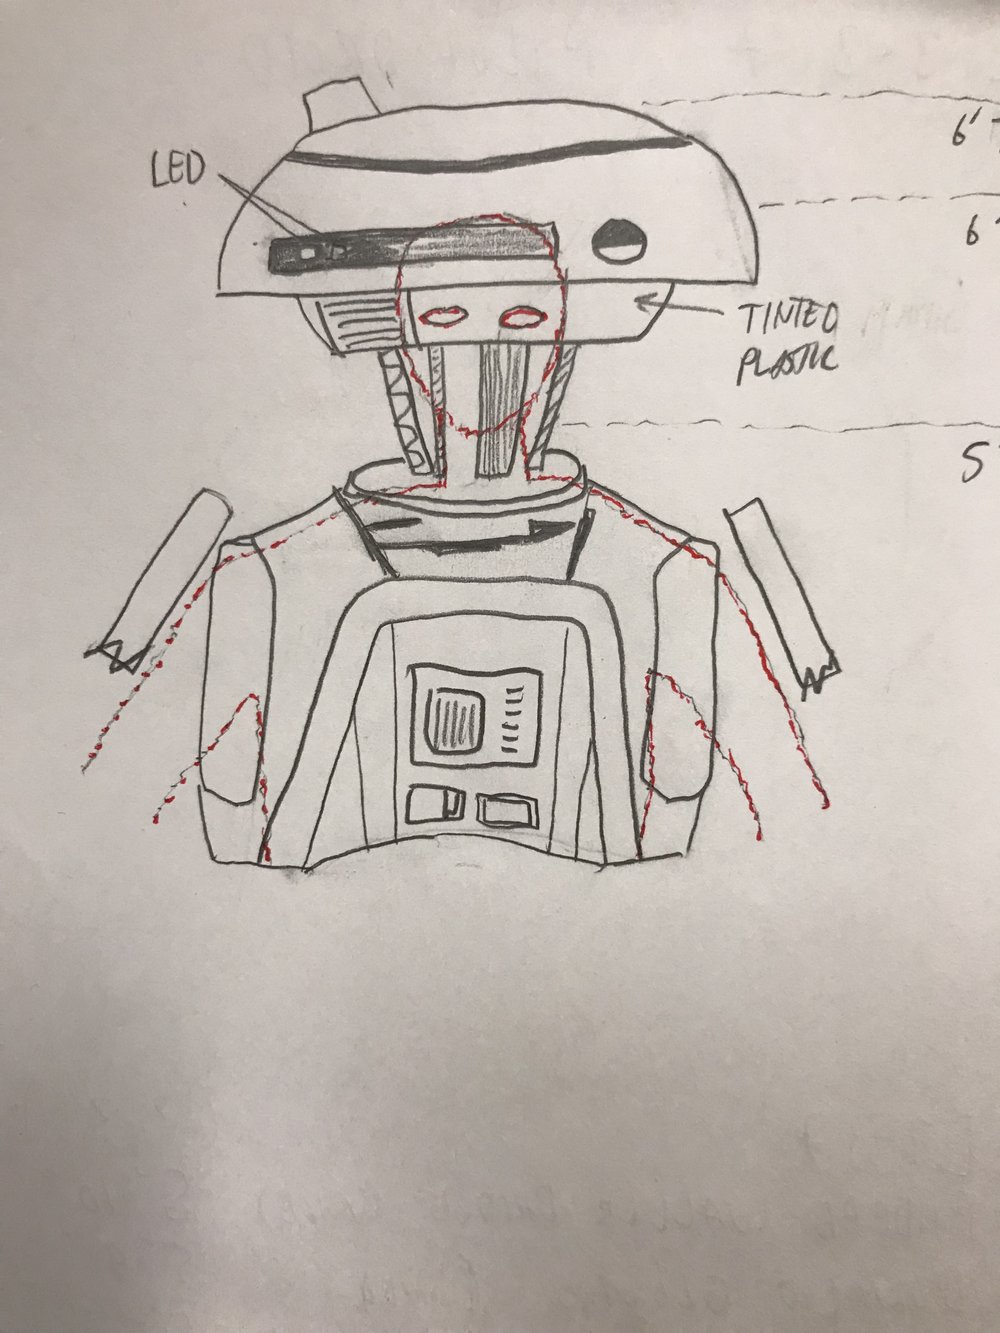 Initial concept for my body alignment inside L3. Hiding my head inside her neck and lower dome.